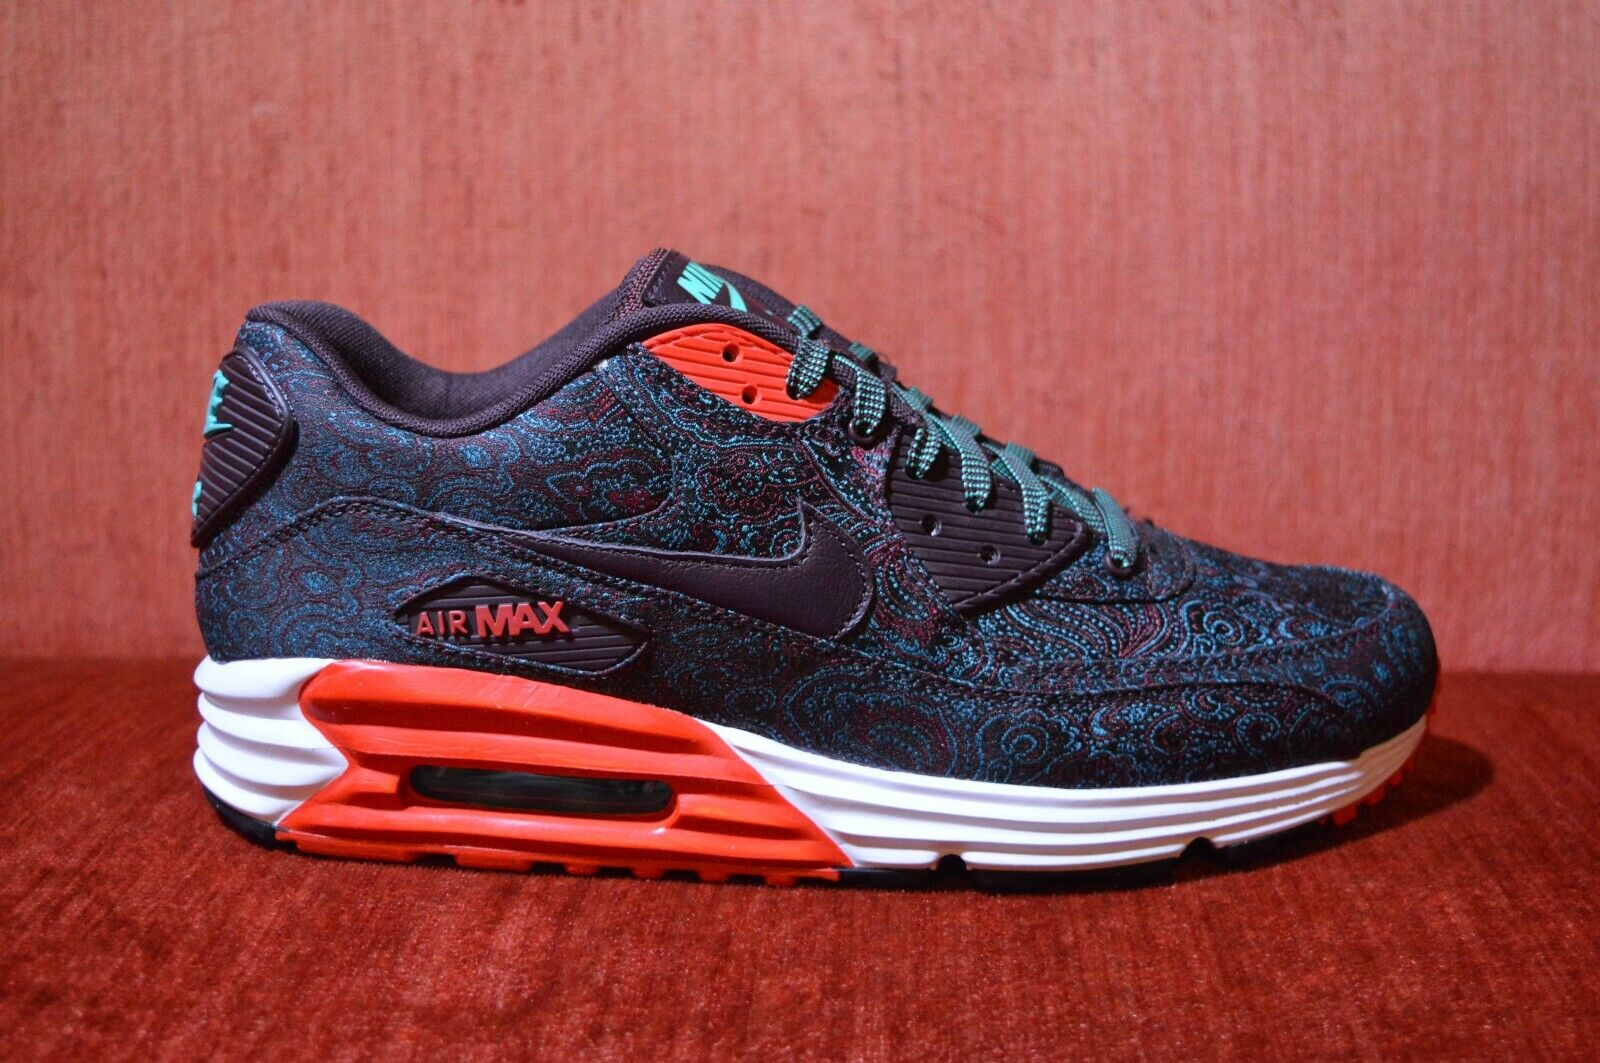 WORN ONCE Nike Air Max Lunar 90 PRM QS Suit And Tie Paisley Size 10 705068 601